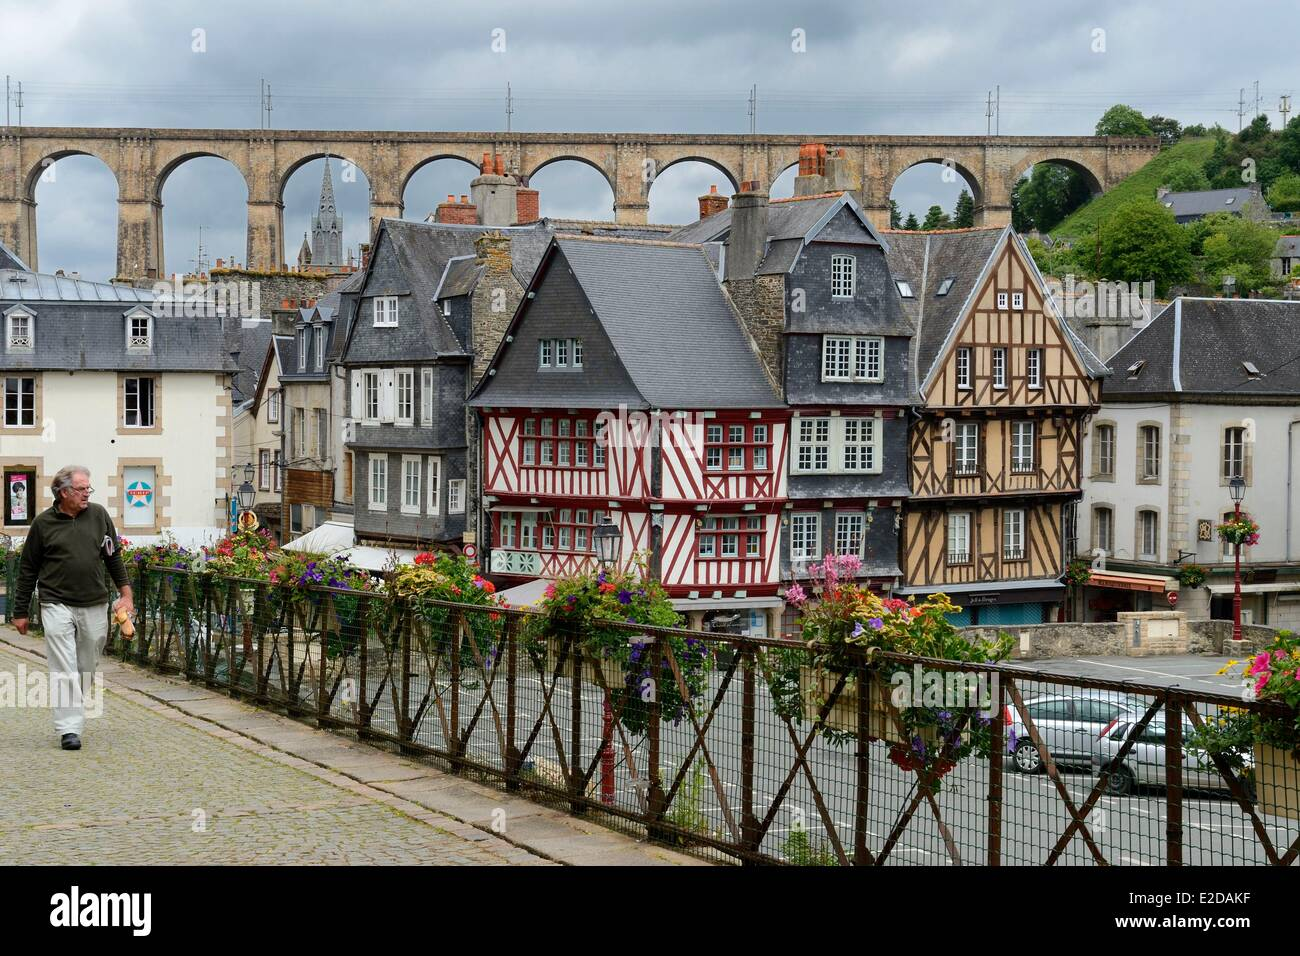 France Finistere Morlaix half timbered house place Allende - Stock Image